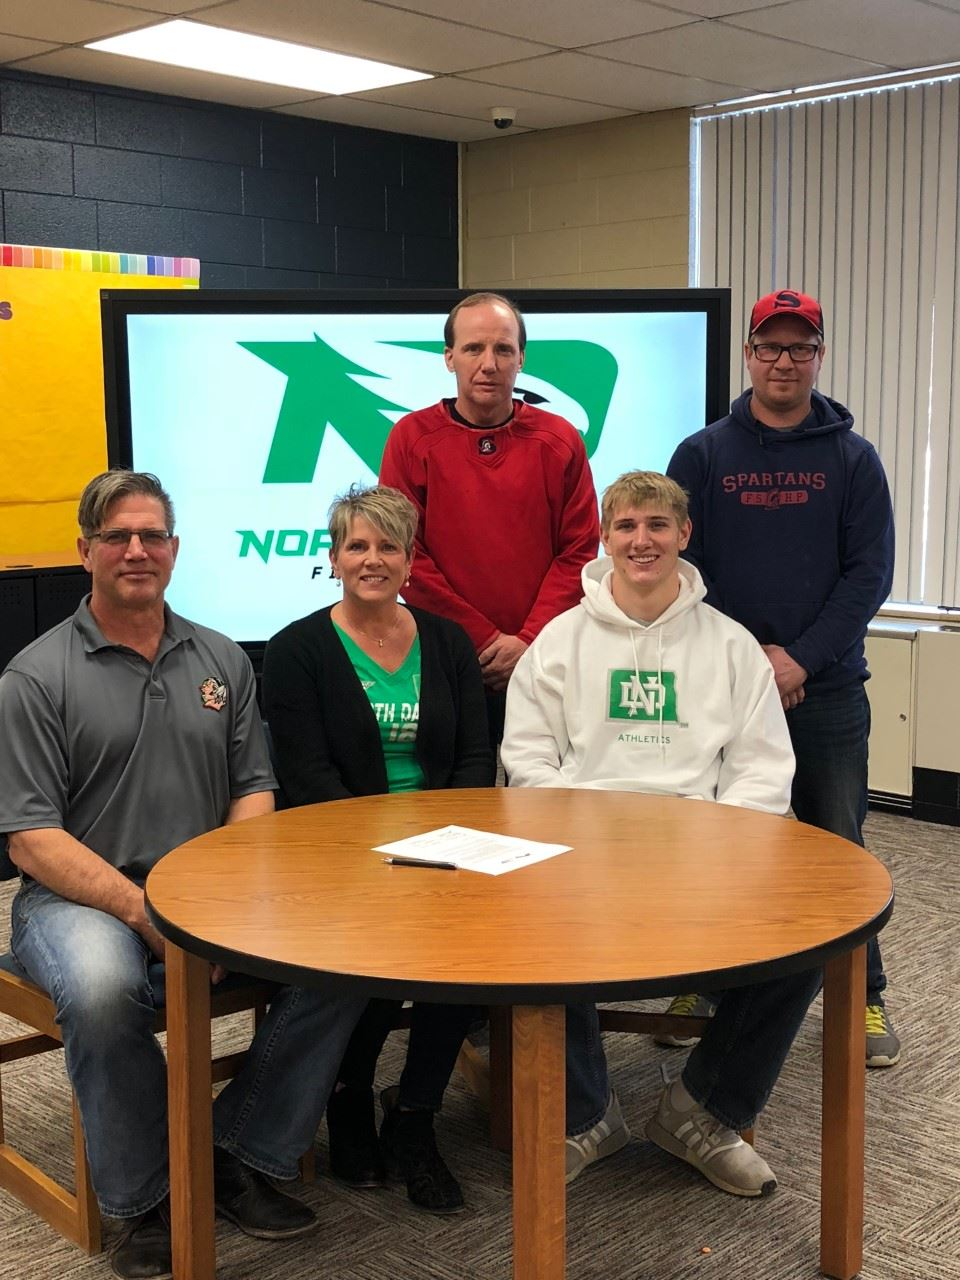 Congratulations to Jack Ihry on signing his letter of intent with UND! Congrats Jack from Spartan Nation!!!